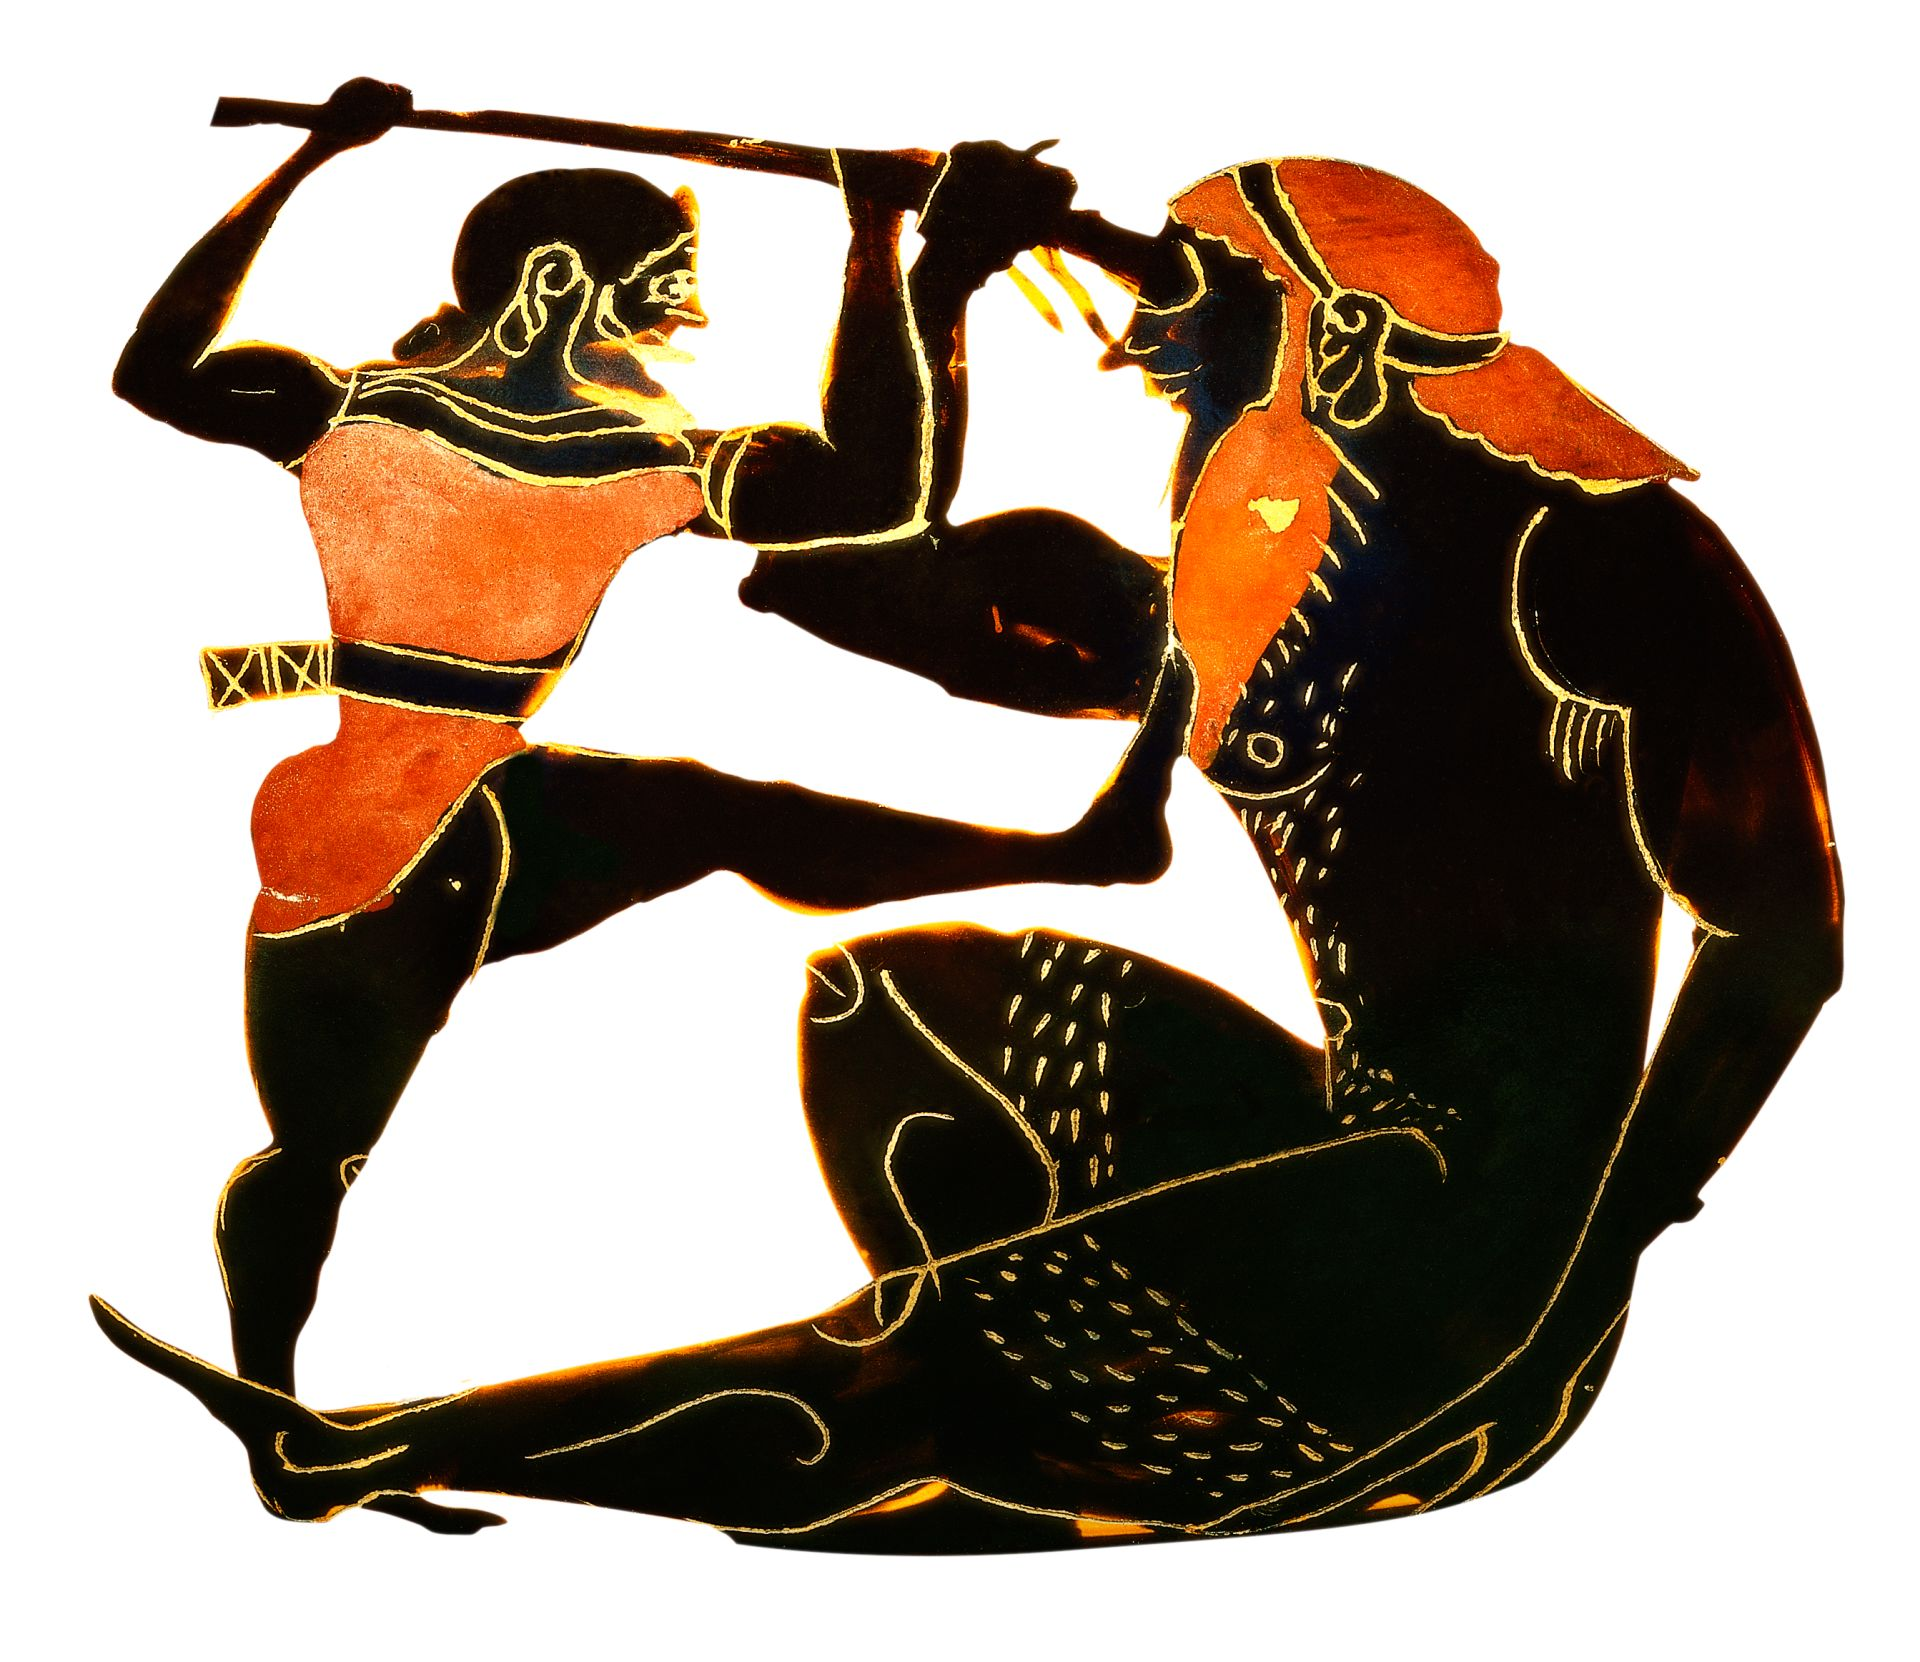 art of warfare depicted in homers iliad Guide to the classics: homer's iliad the fall of the athenian army in sicily during the peloponnesian war in 413 bc as depicted in teacher in every art.